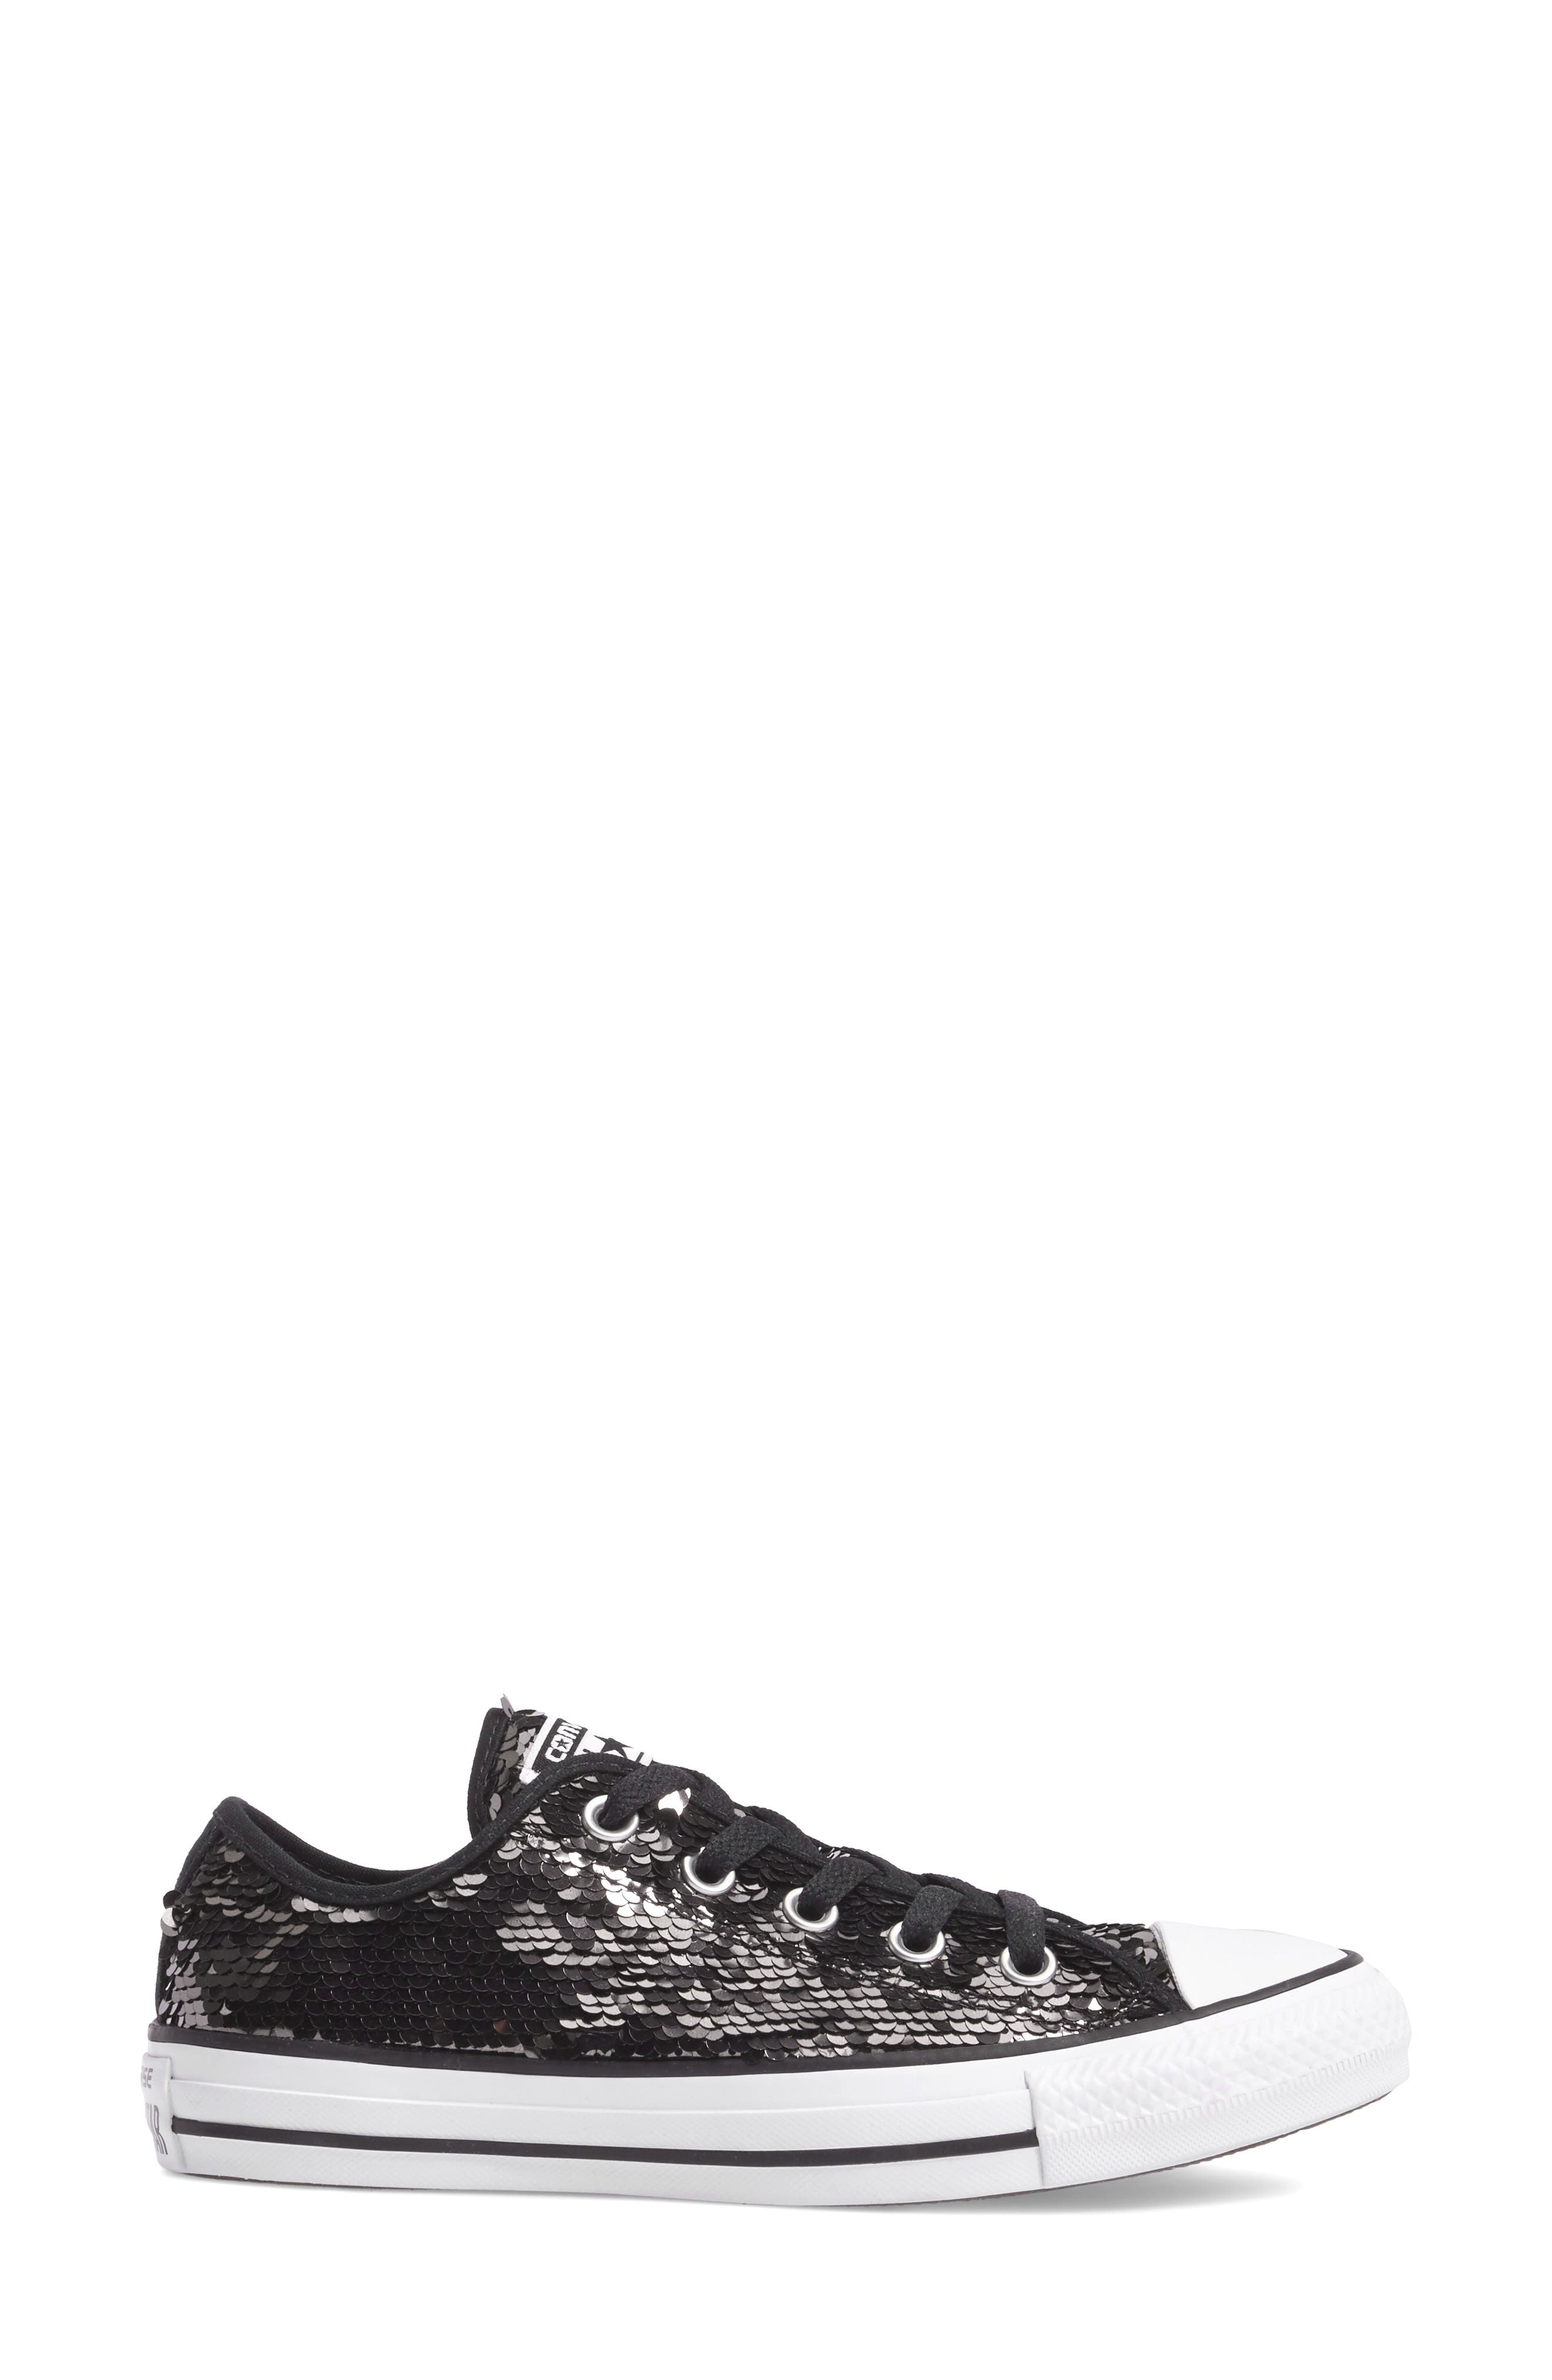 Chuck Taylor<sup>®</sup> All Star<sup>®</sup> Sequin Low Top Sneaker,                             Alternate thumbnail 5, color,